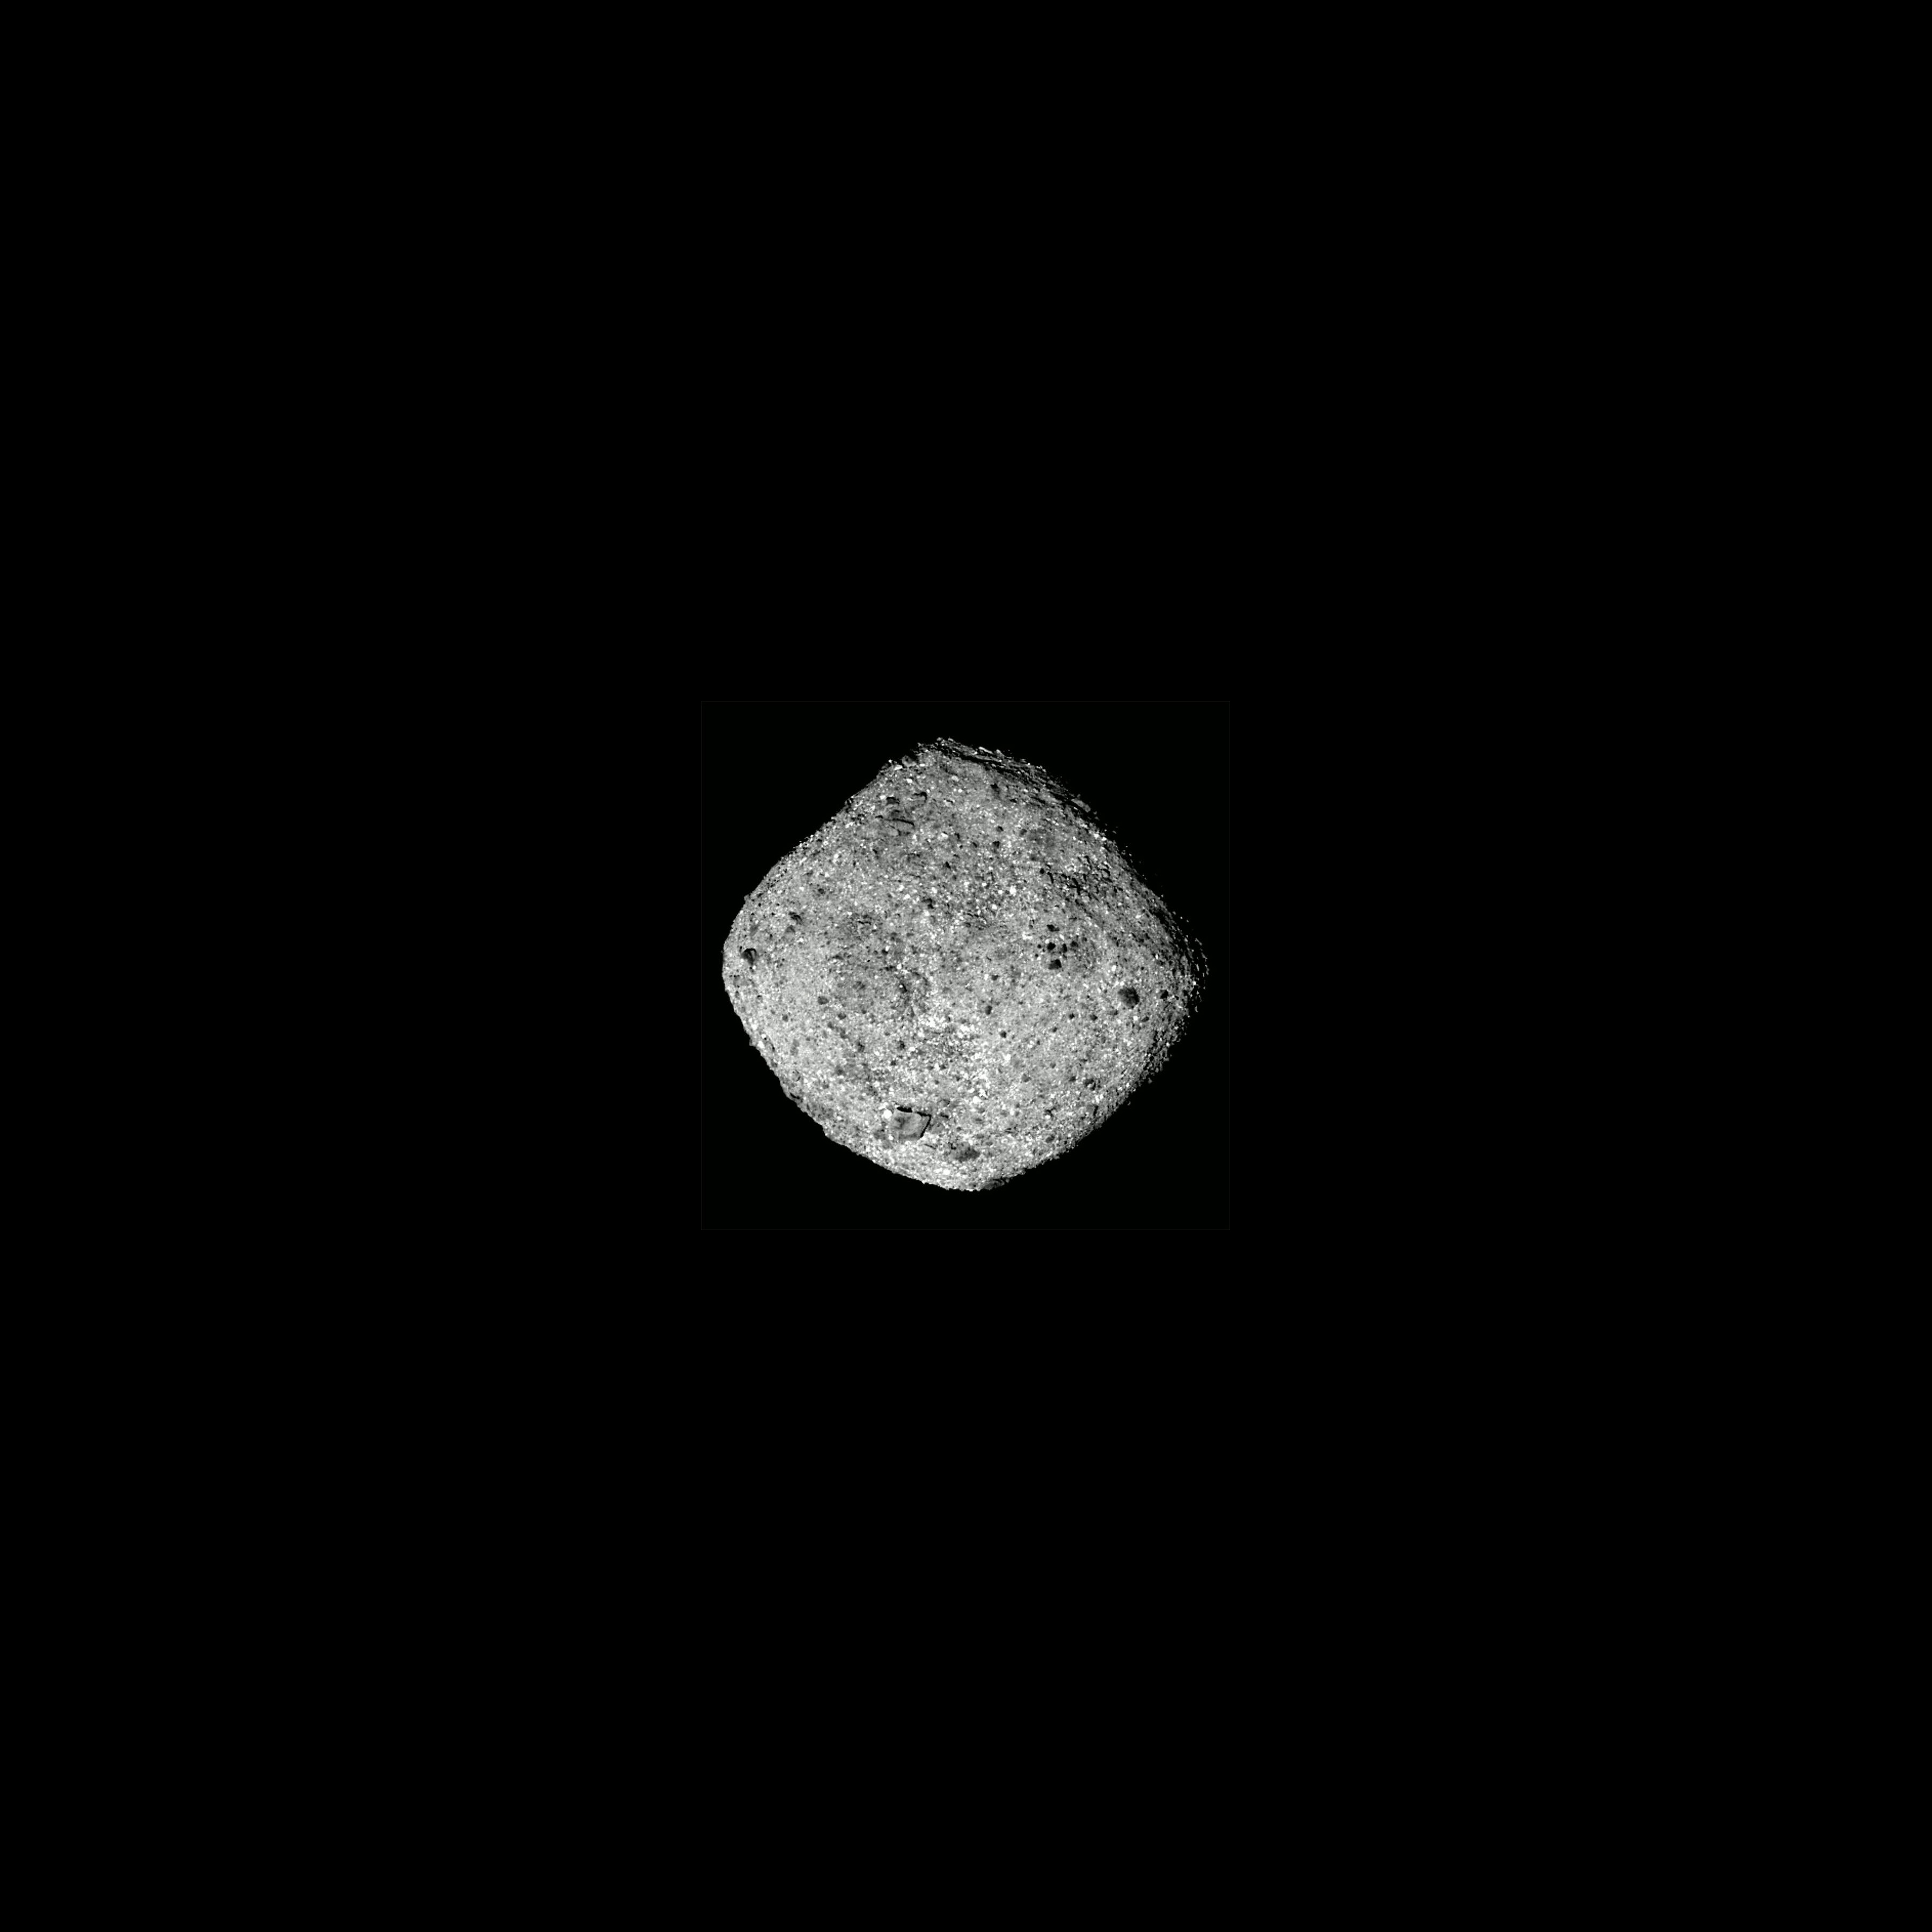 This image of Bennu was taken by the OSIRIS-REx spacecraft from a distance of around 50 miles .